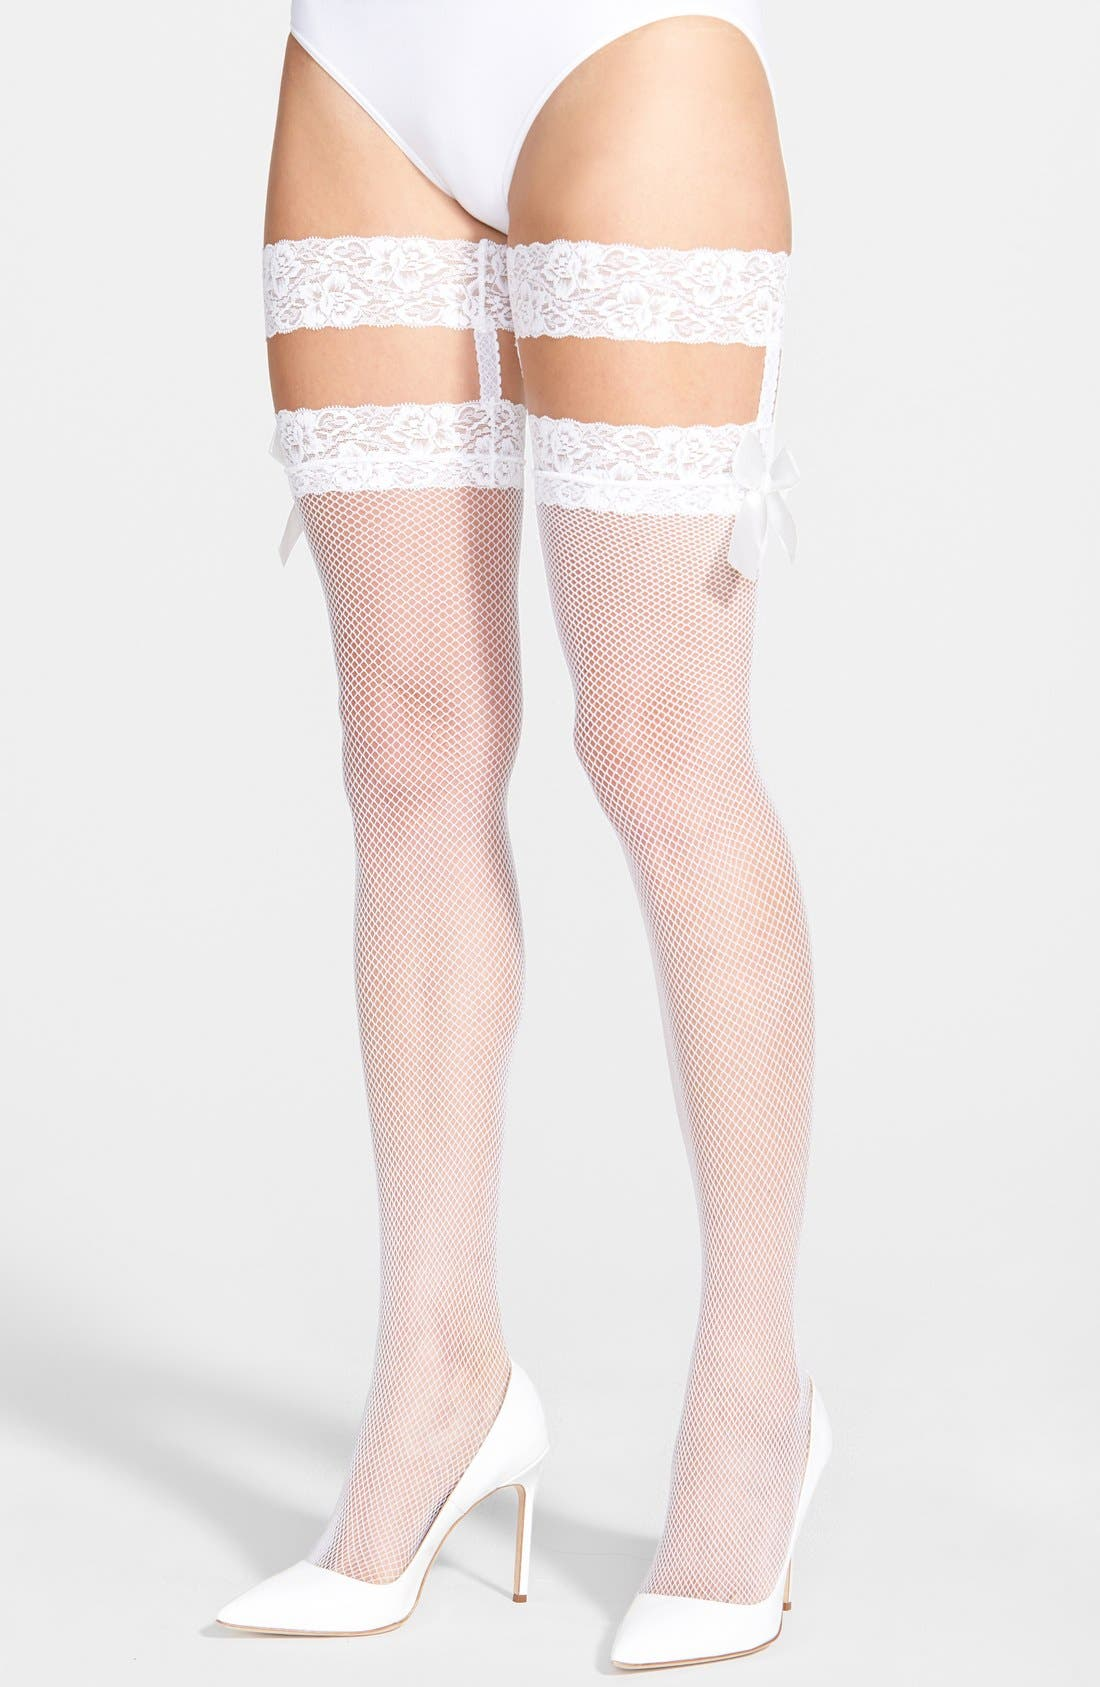 Alternate Image 1 Selected - Betsey Johnson Fishnet Thigh High Stockings with Lace Garters